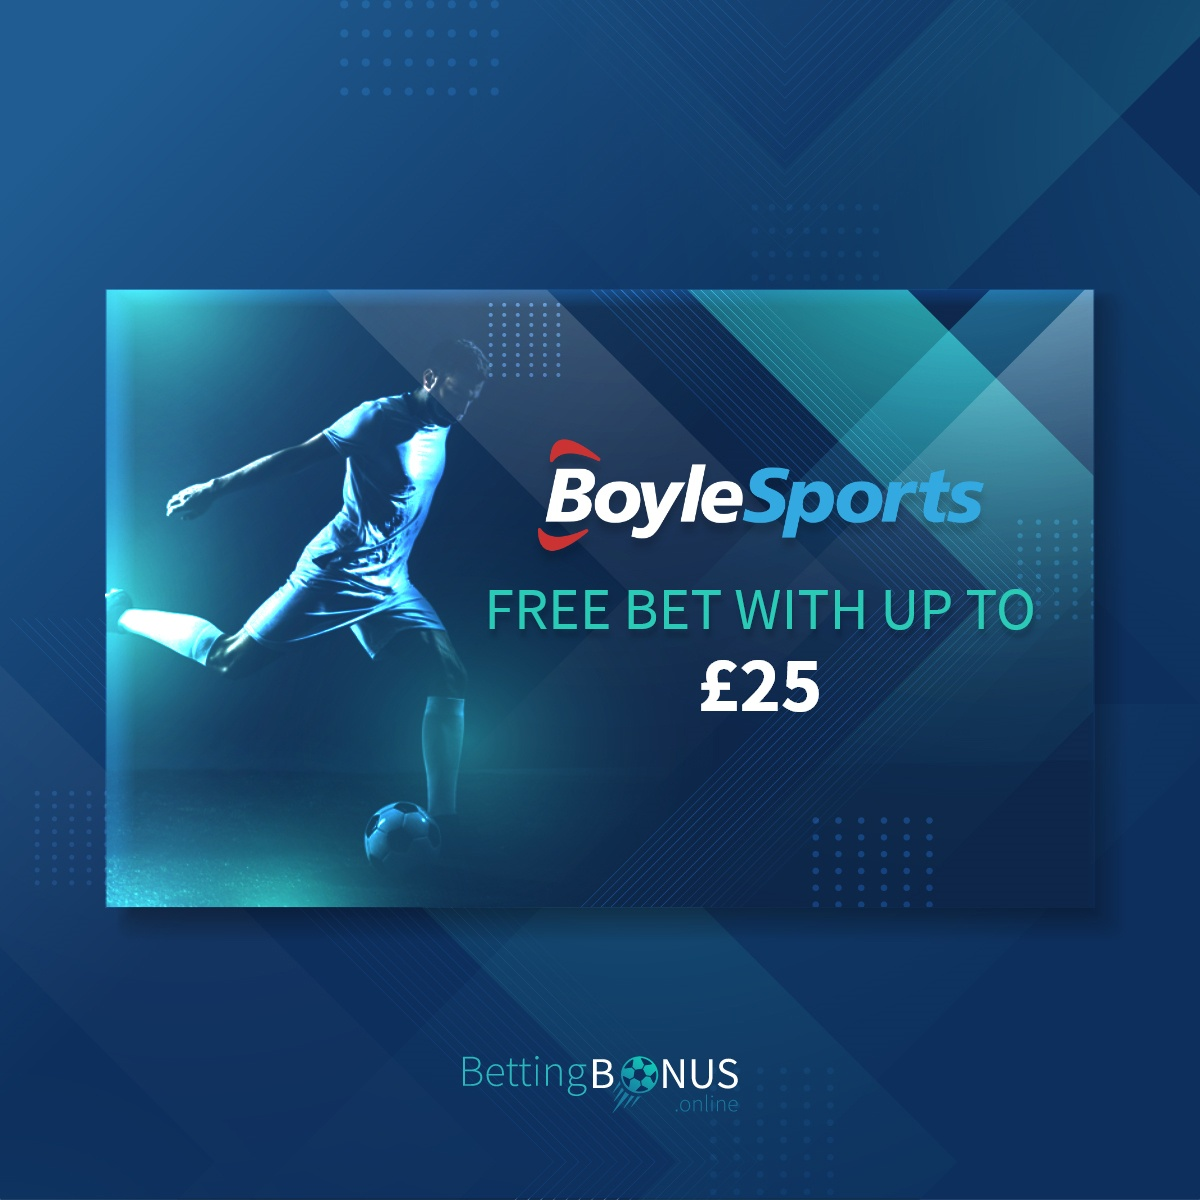 <span></noscript>BoyleSports Review</span> - Learn About BoyleSports Live Chat, Complaints, Withdrawal Problems, In Play Betting and More